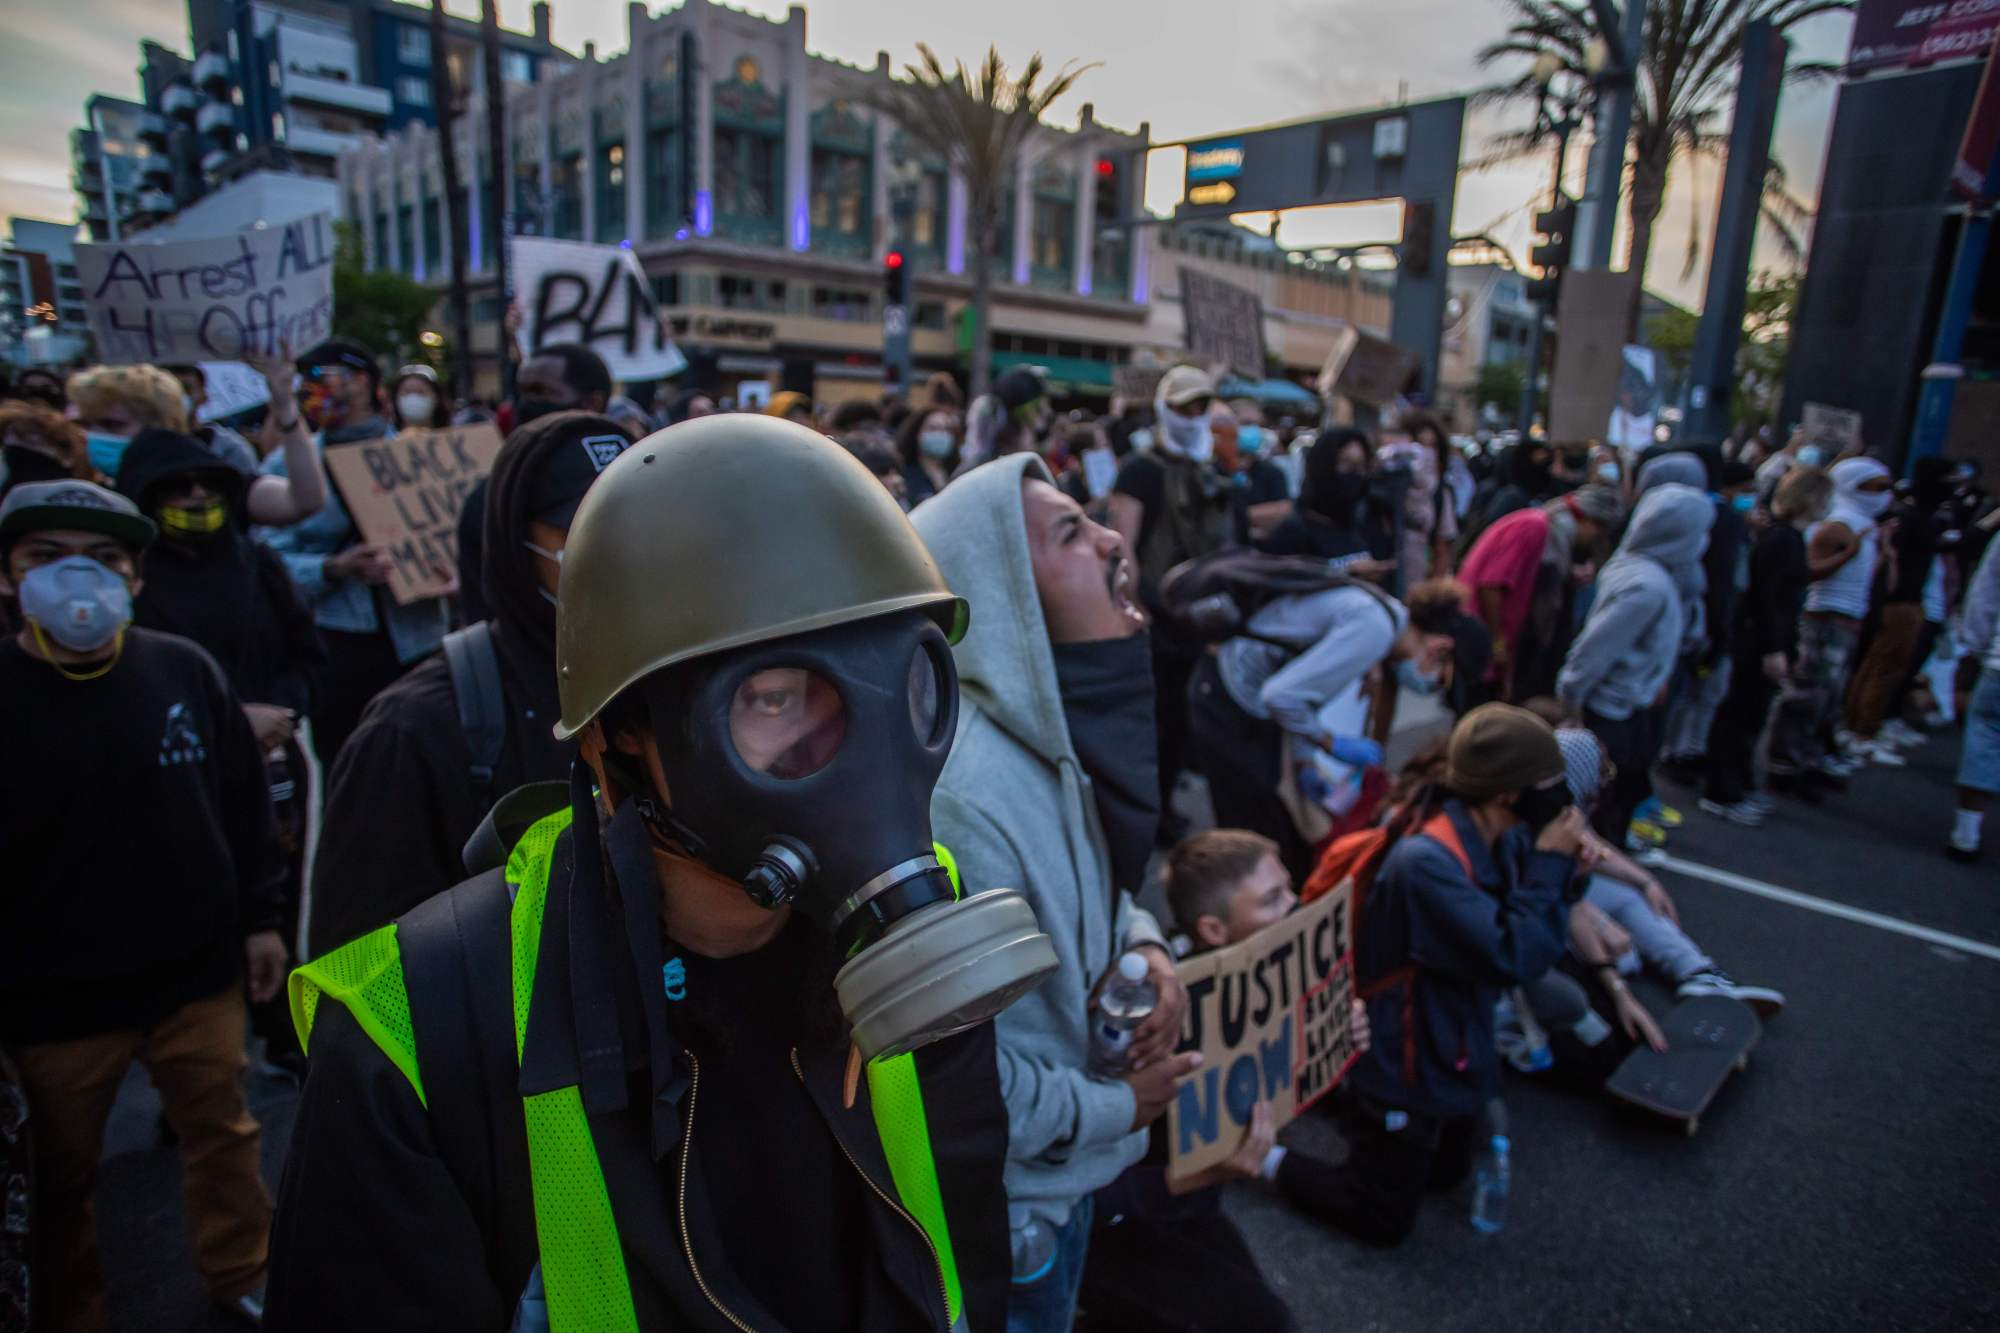 A man wearing a gas mask stands in front of a Police line in Downtown Long Beach on May 31, 2020, during a protest against the death of George Floyd. (APU GOMES/AFP via Getty Images)